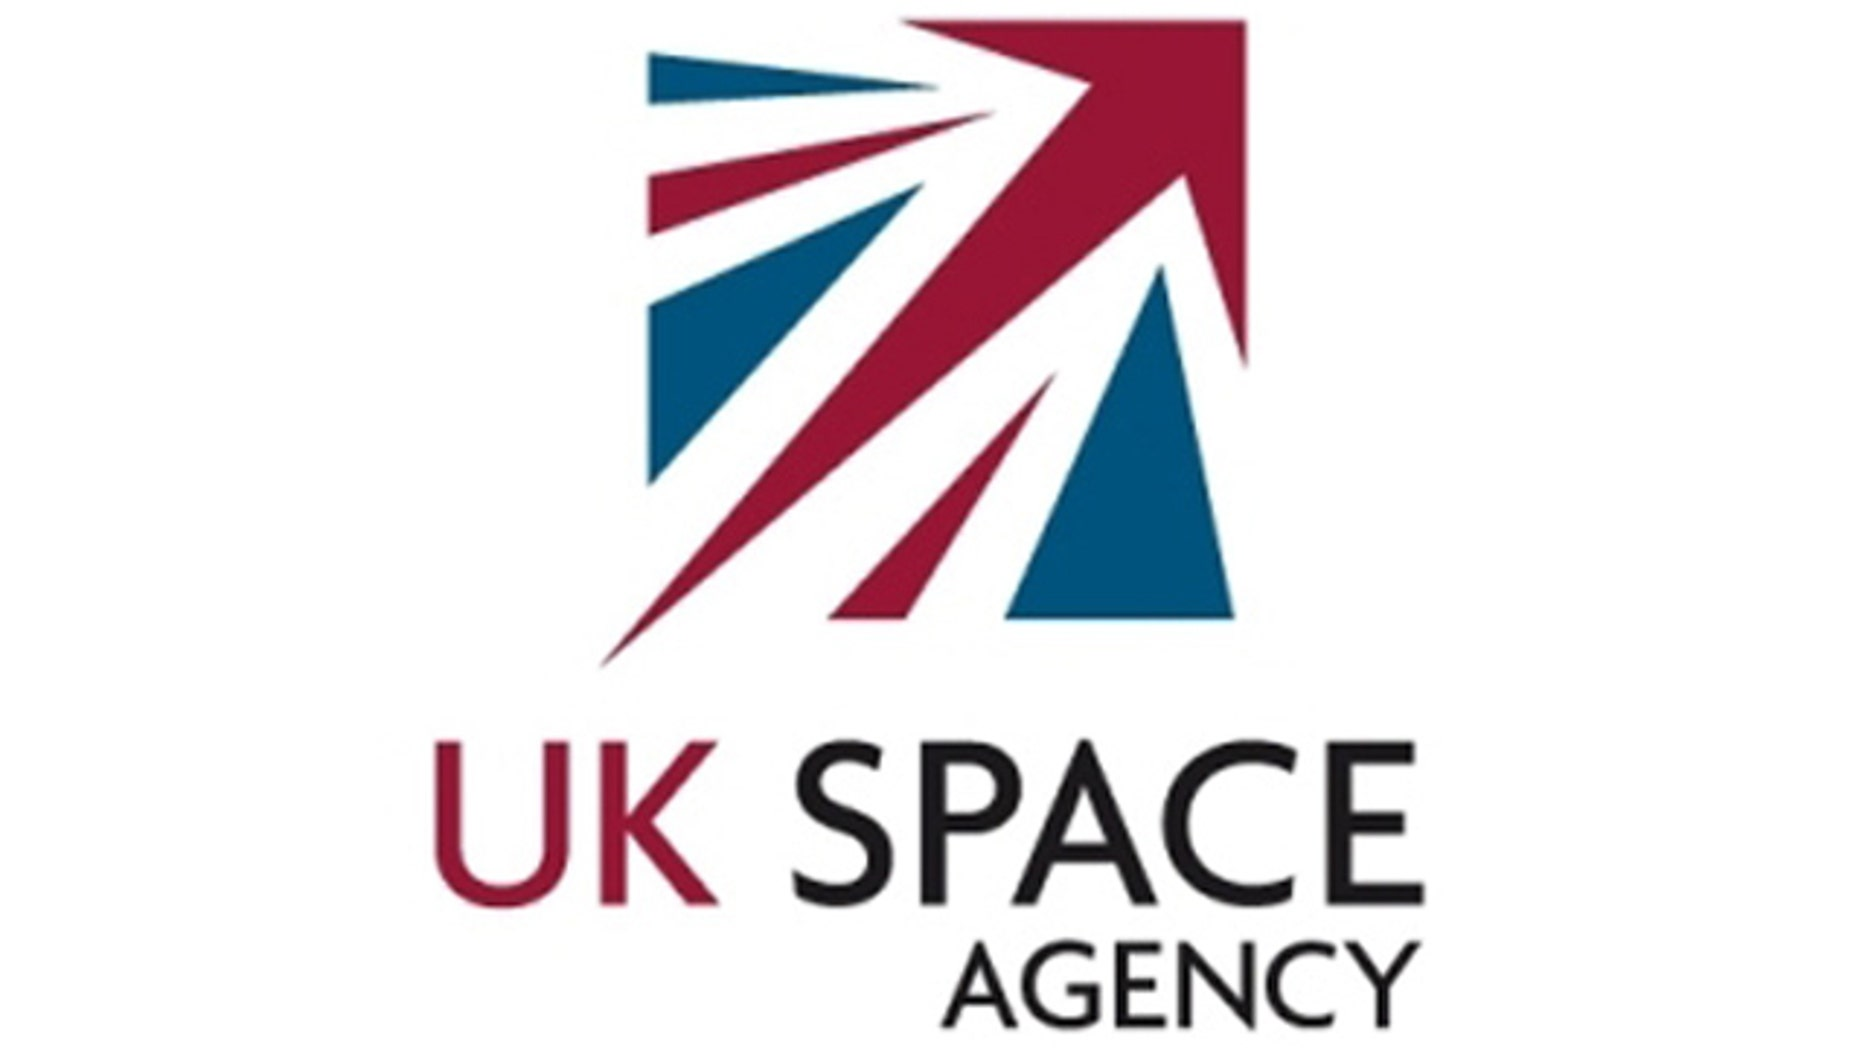 The logo for the new UK Space Agency launched by the United Kingdom on March 23, 2010.